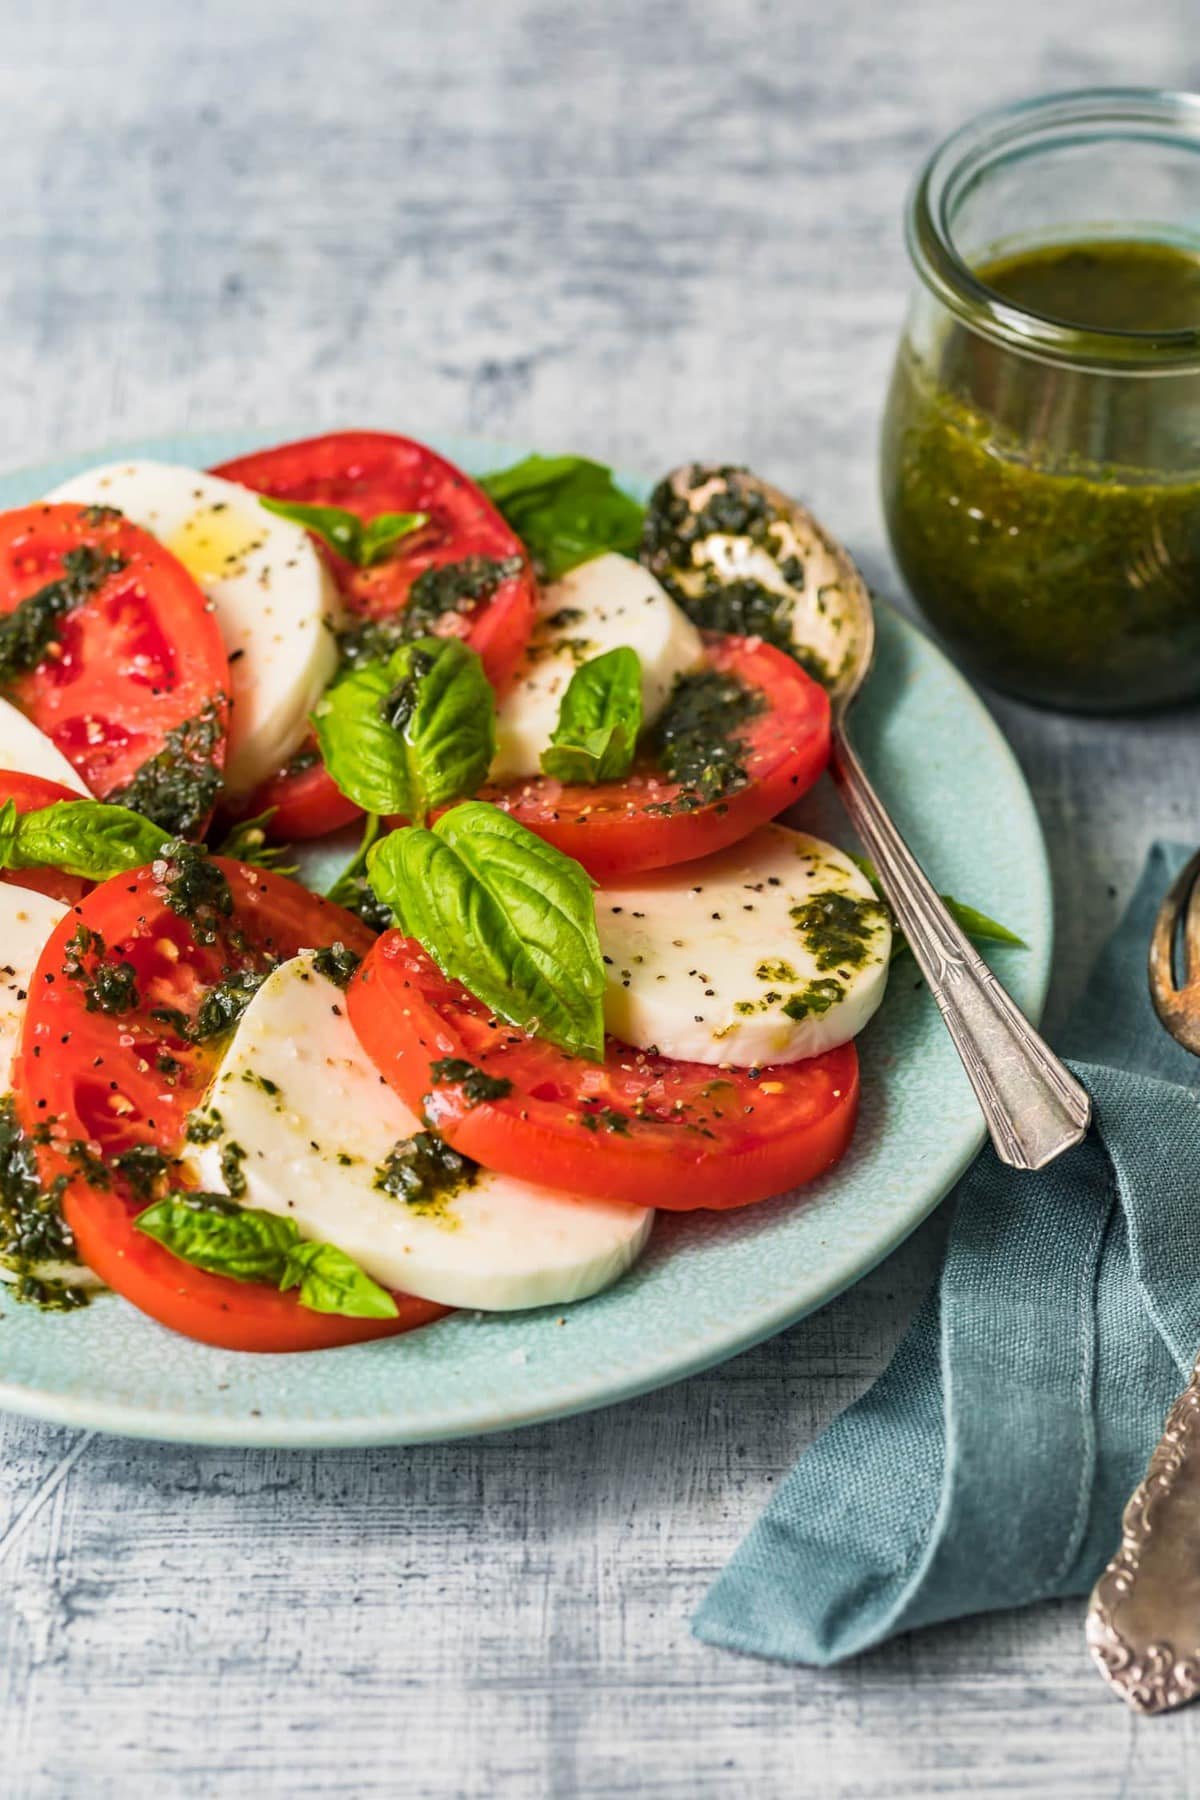 Tomato and mozzarella salad with basil dressing on top